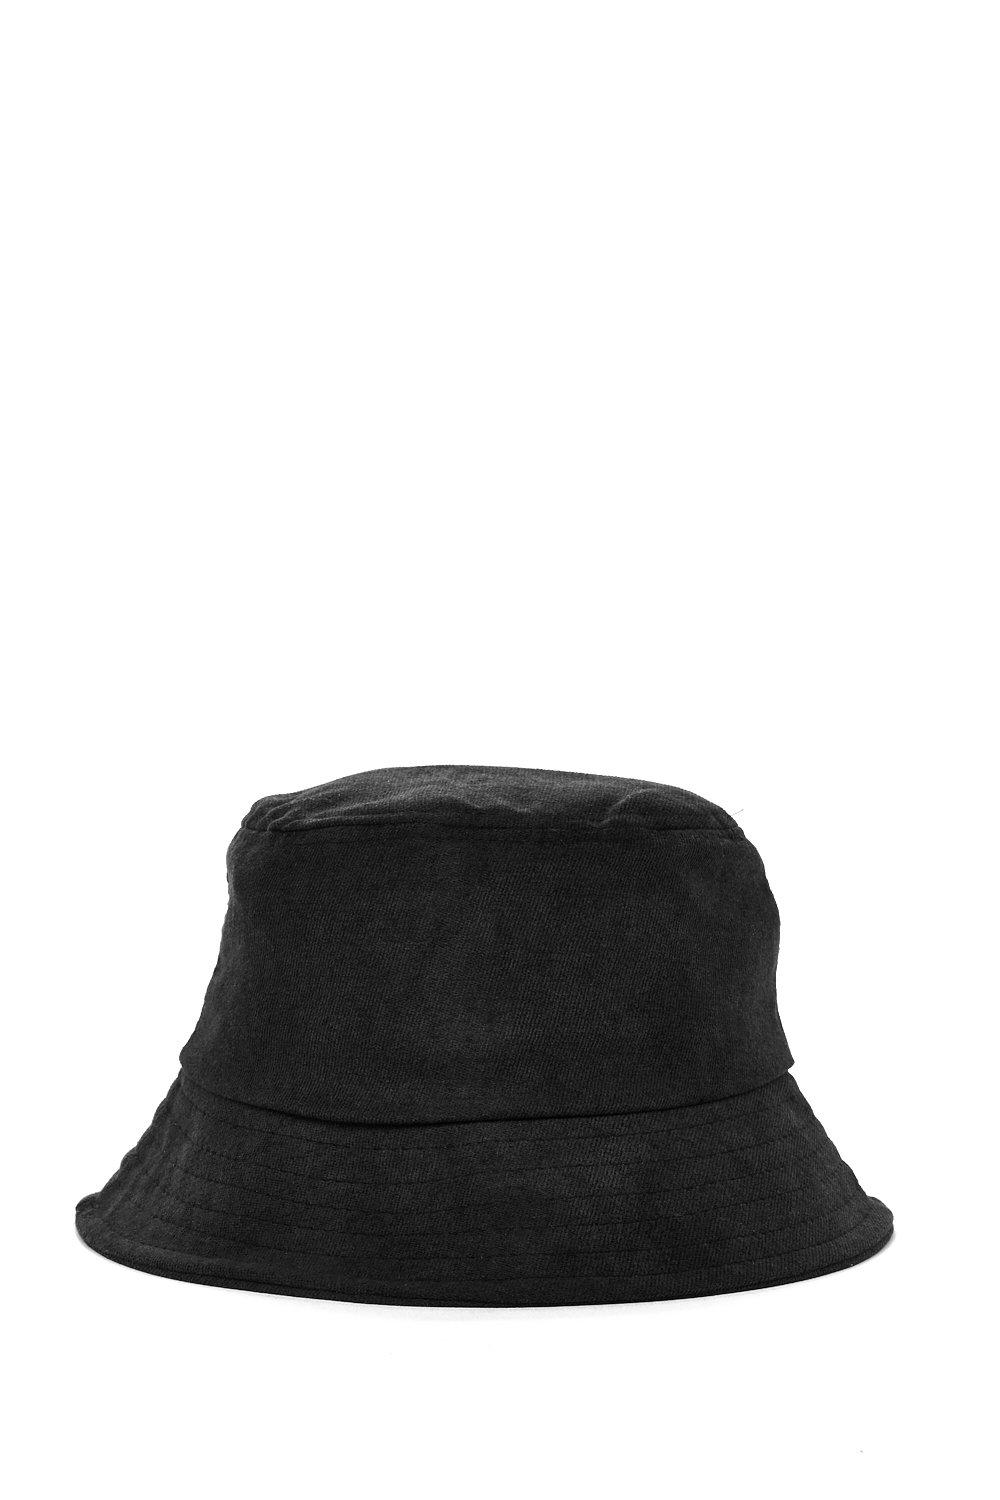 c766f5a7 Let's Head Out Bucket Hat | Shop Clothes at Nasty Gal!